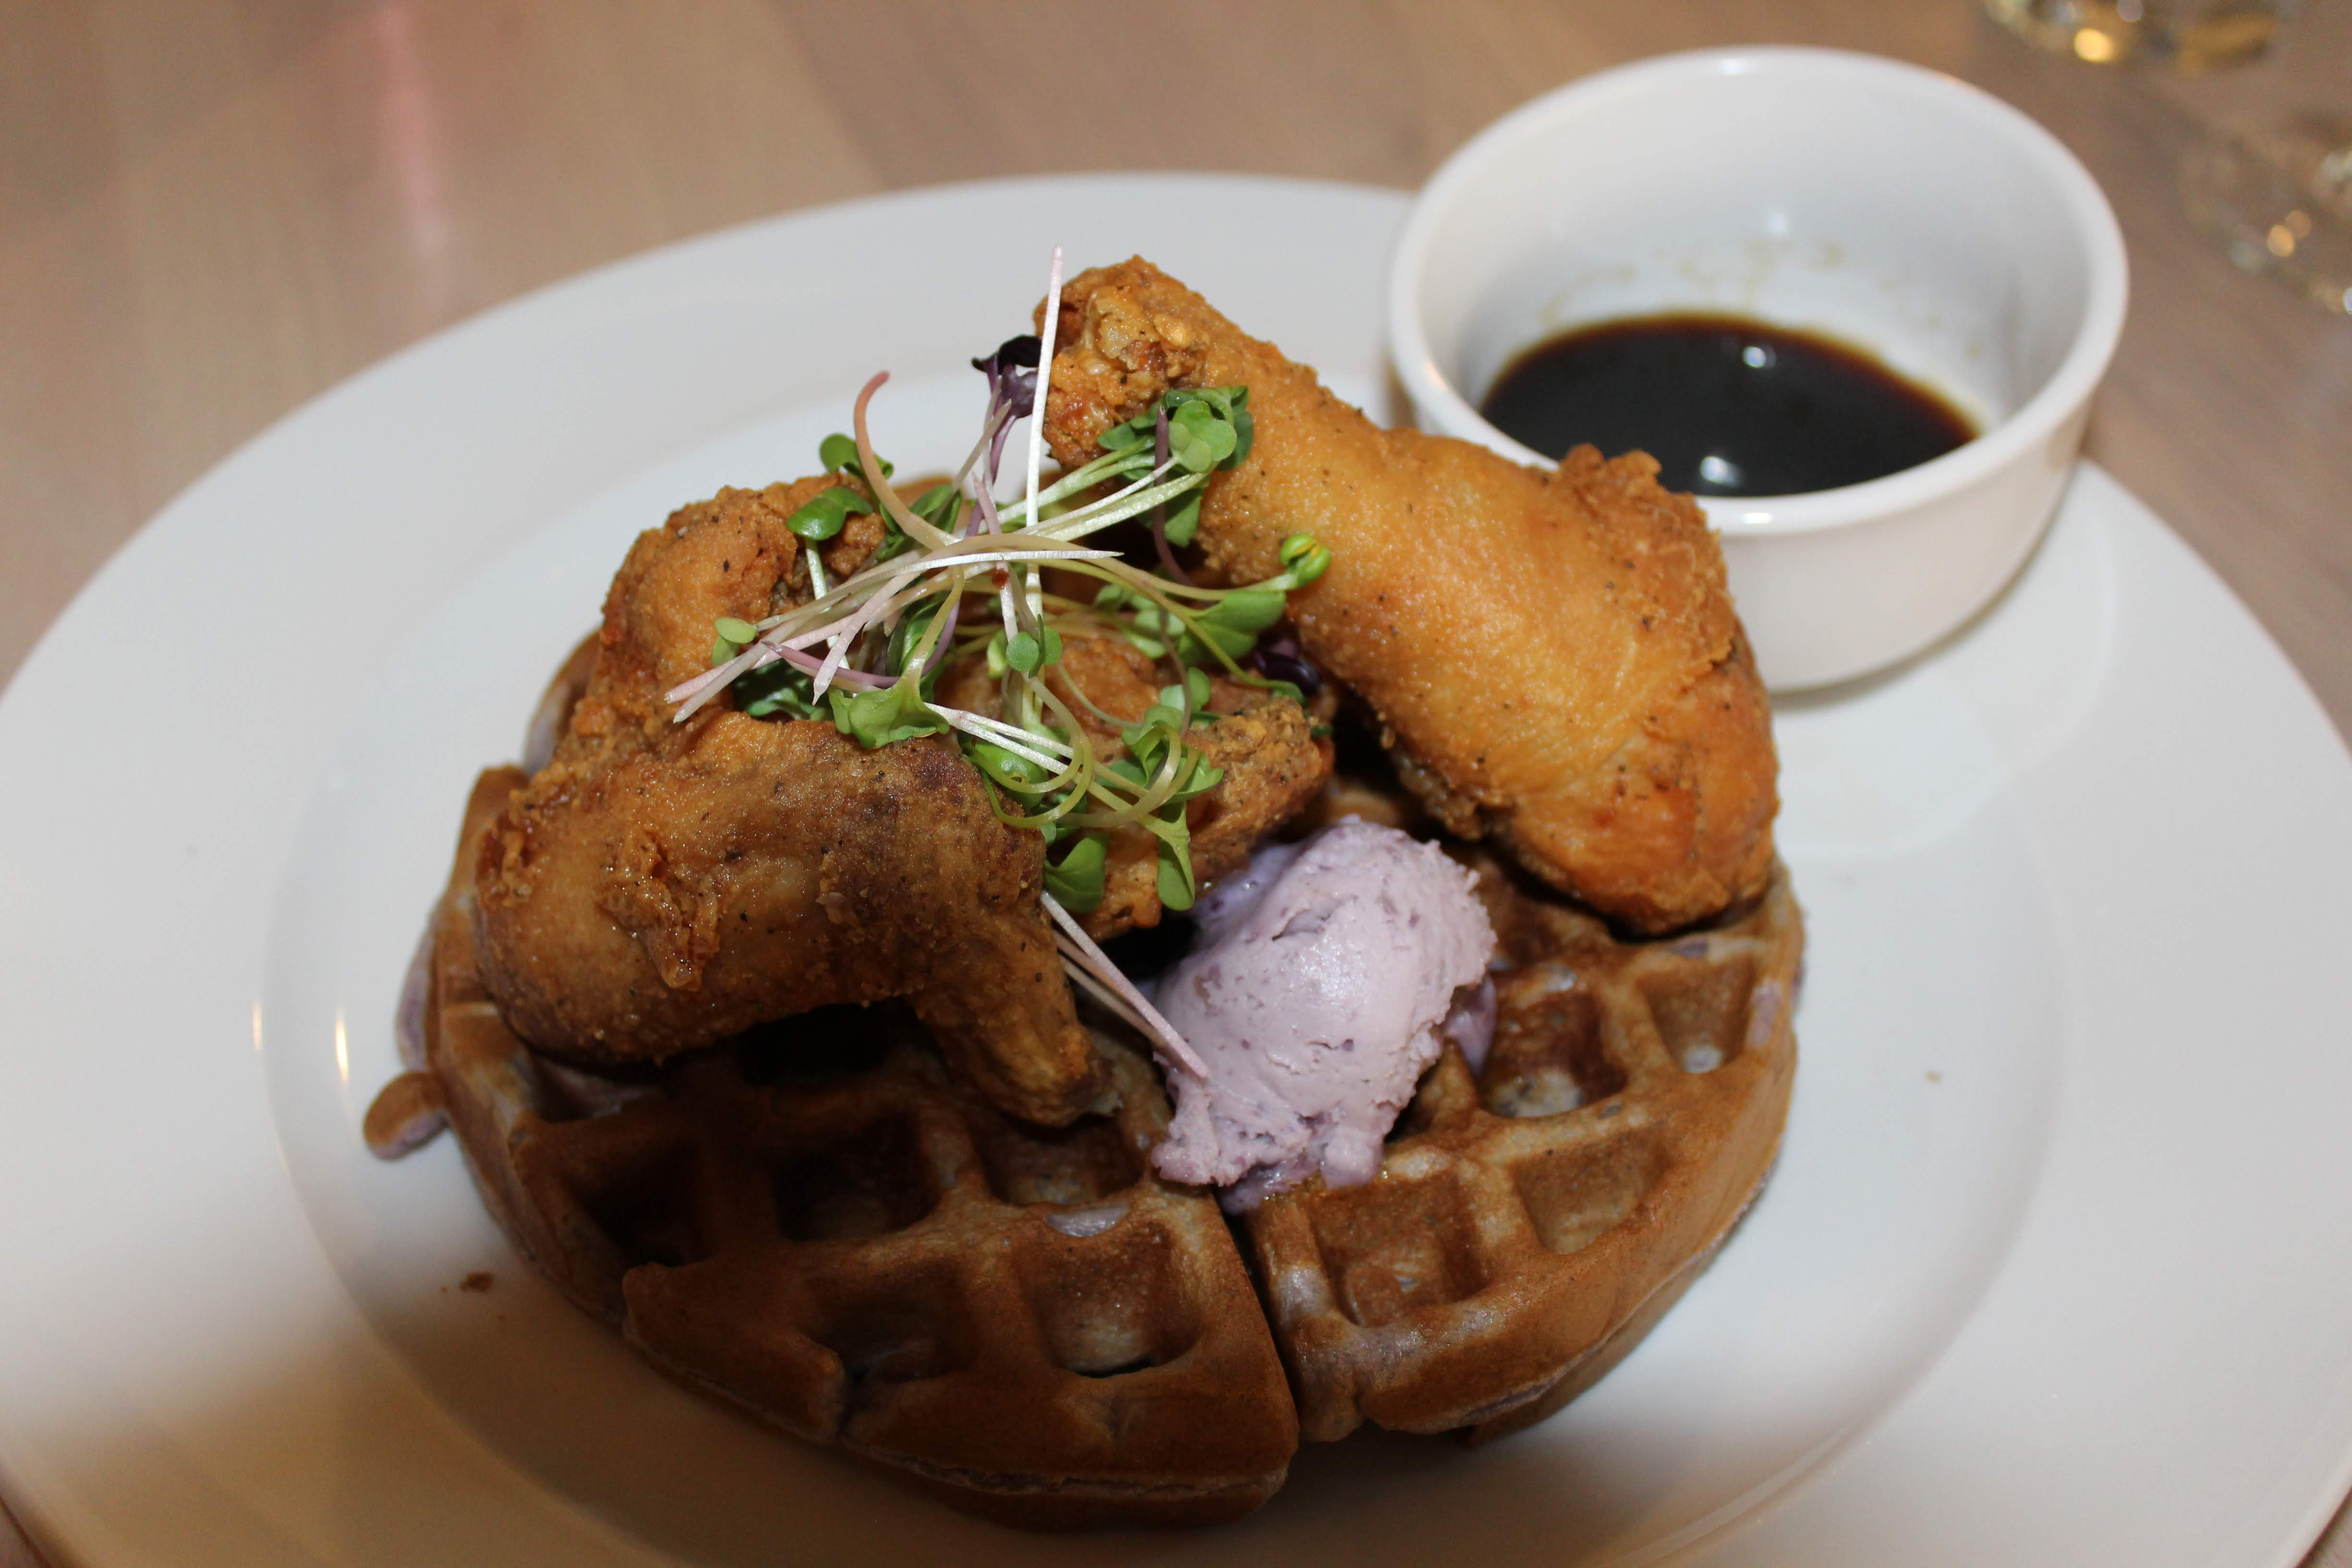 Photo of chicken and waffles from Isla